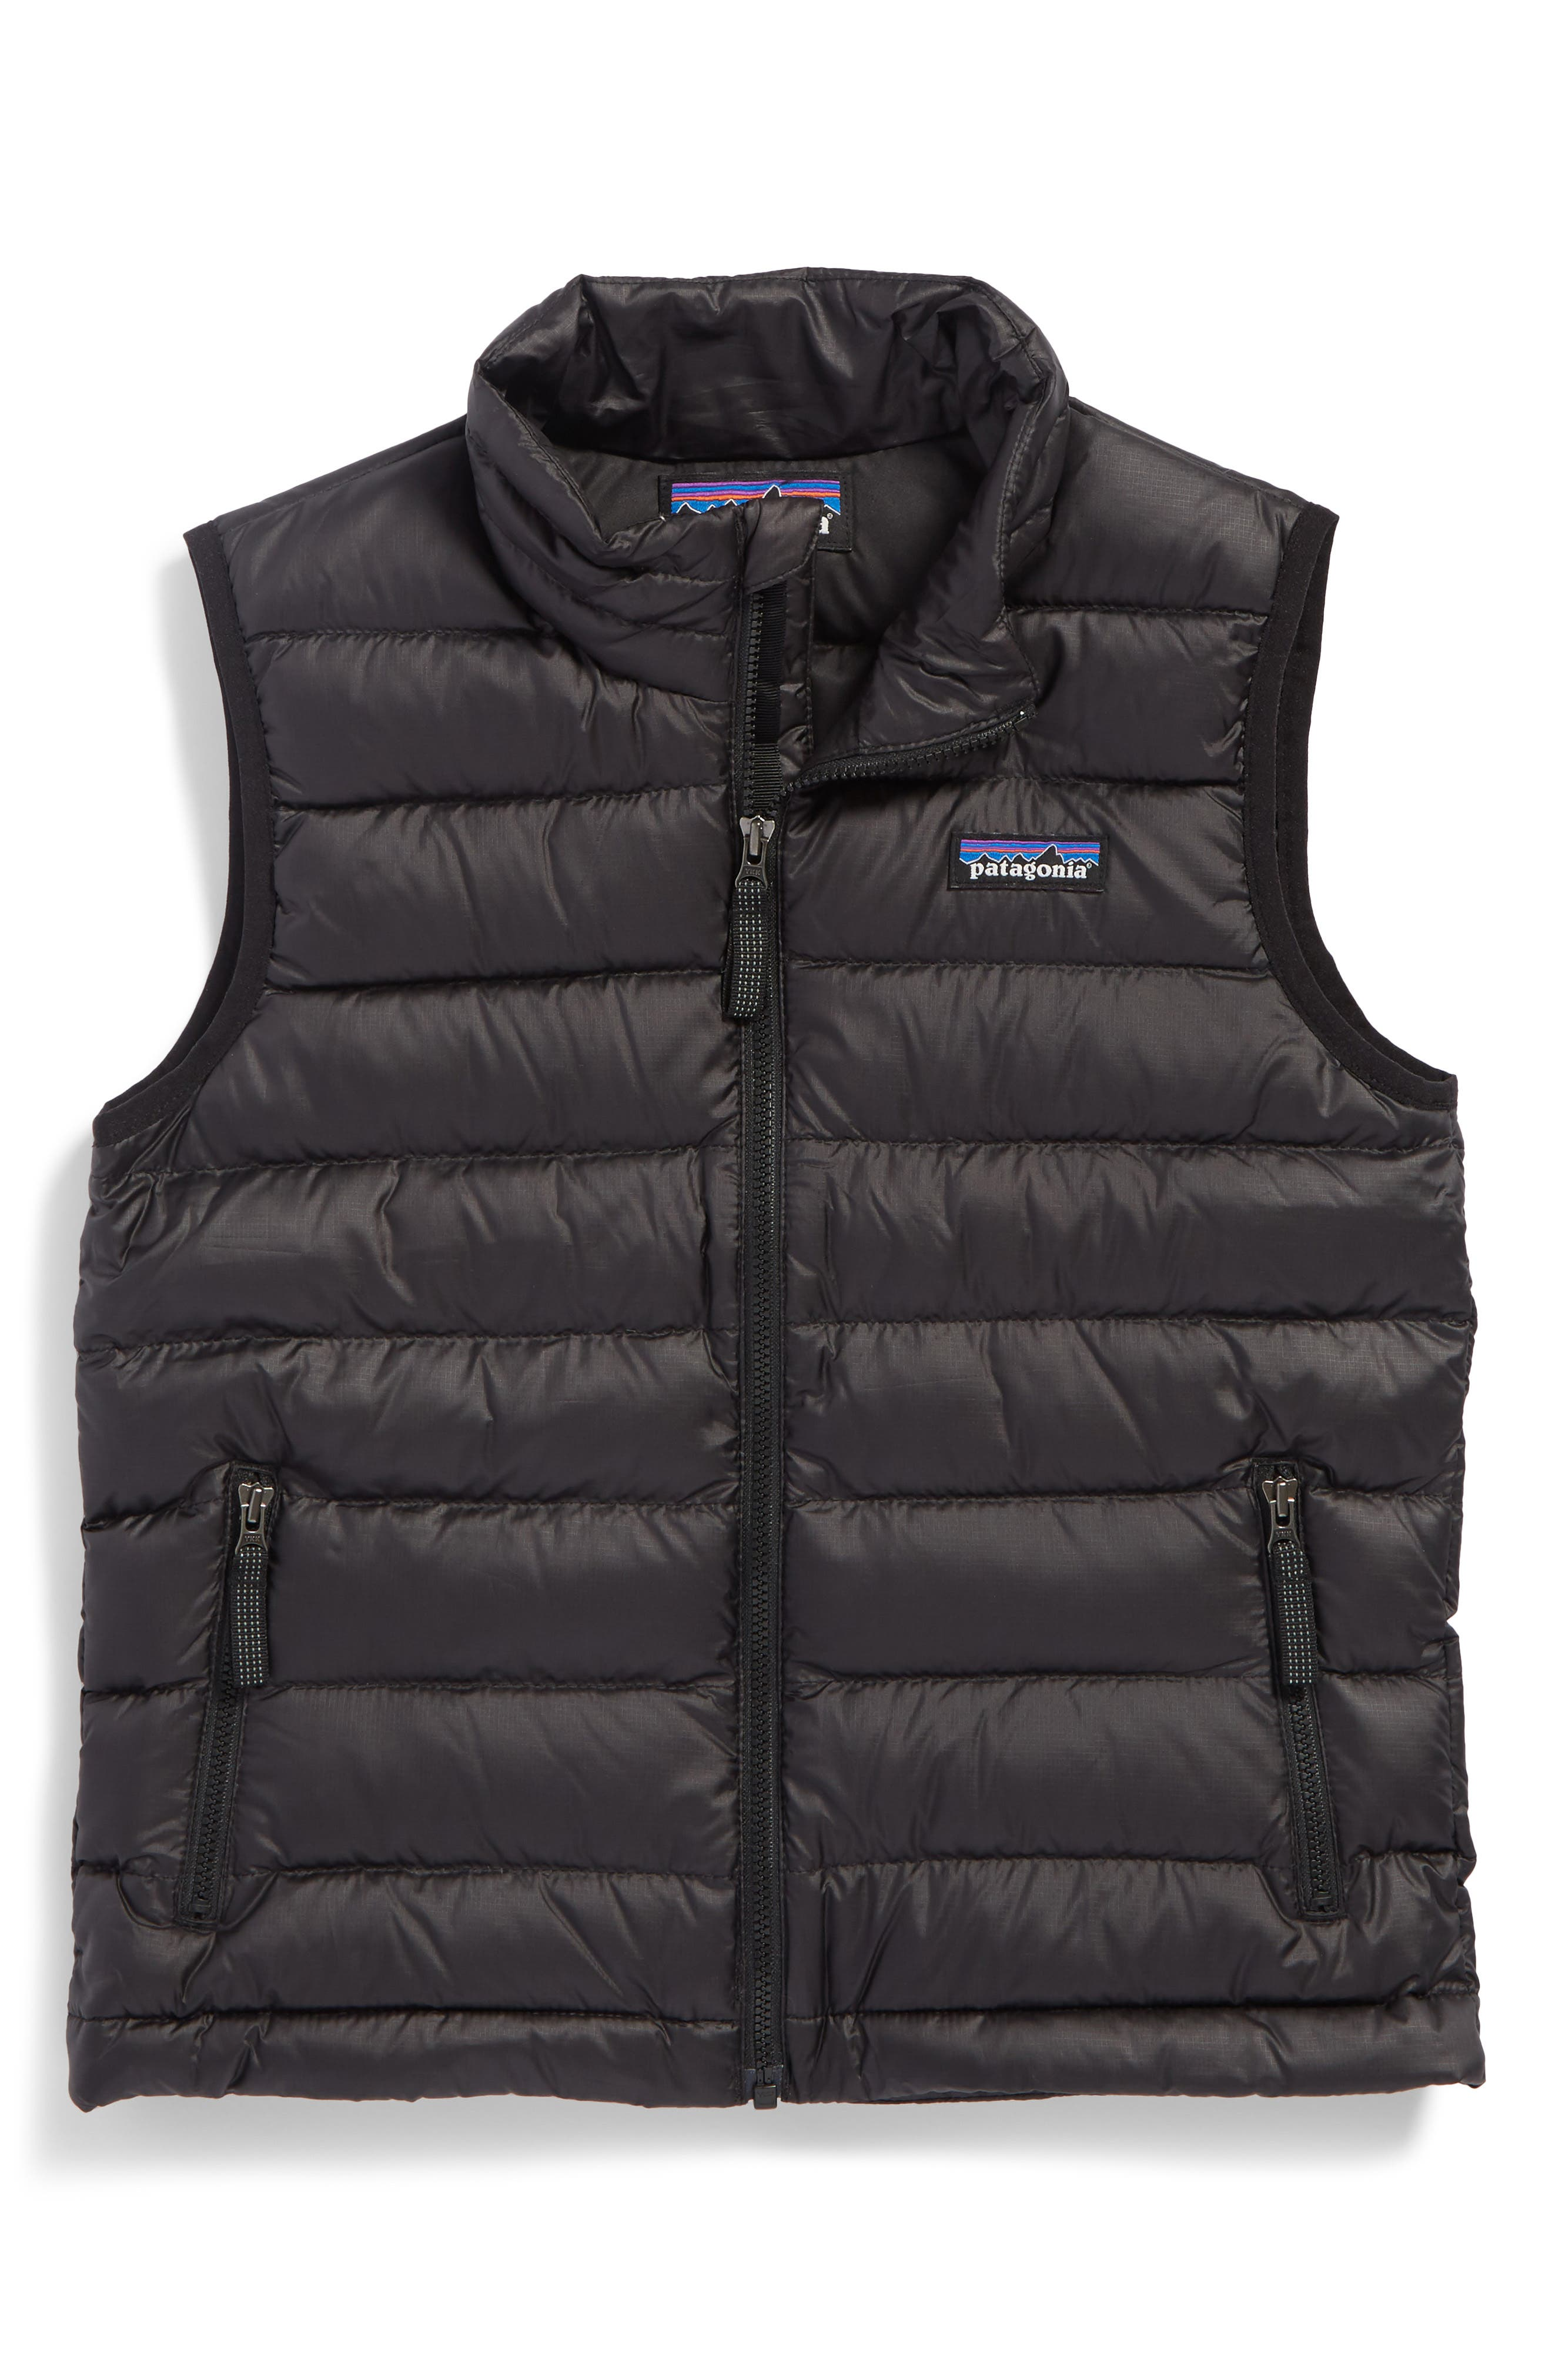 Patagonia 600-Fill Power Down Windproof & Water Resistant Sweater Vest (Little Boys & Big Boys)